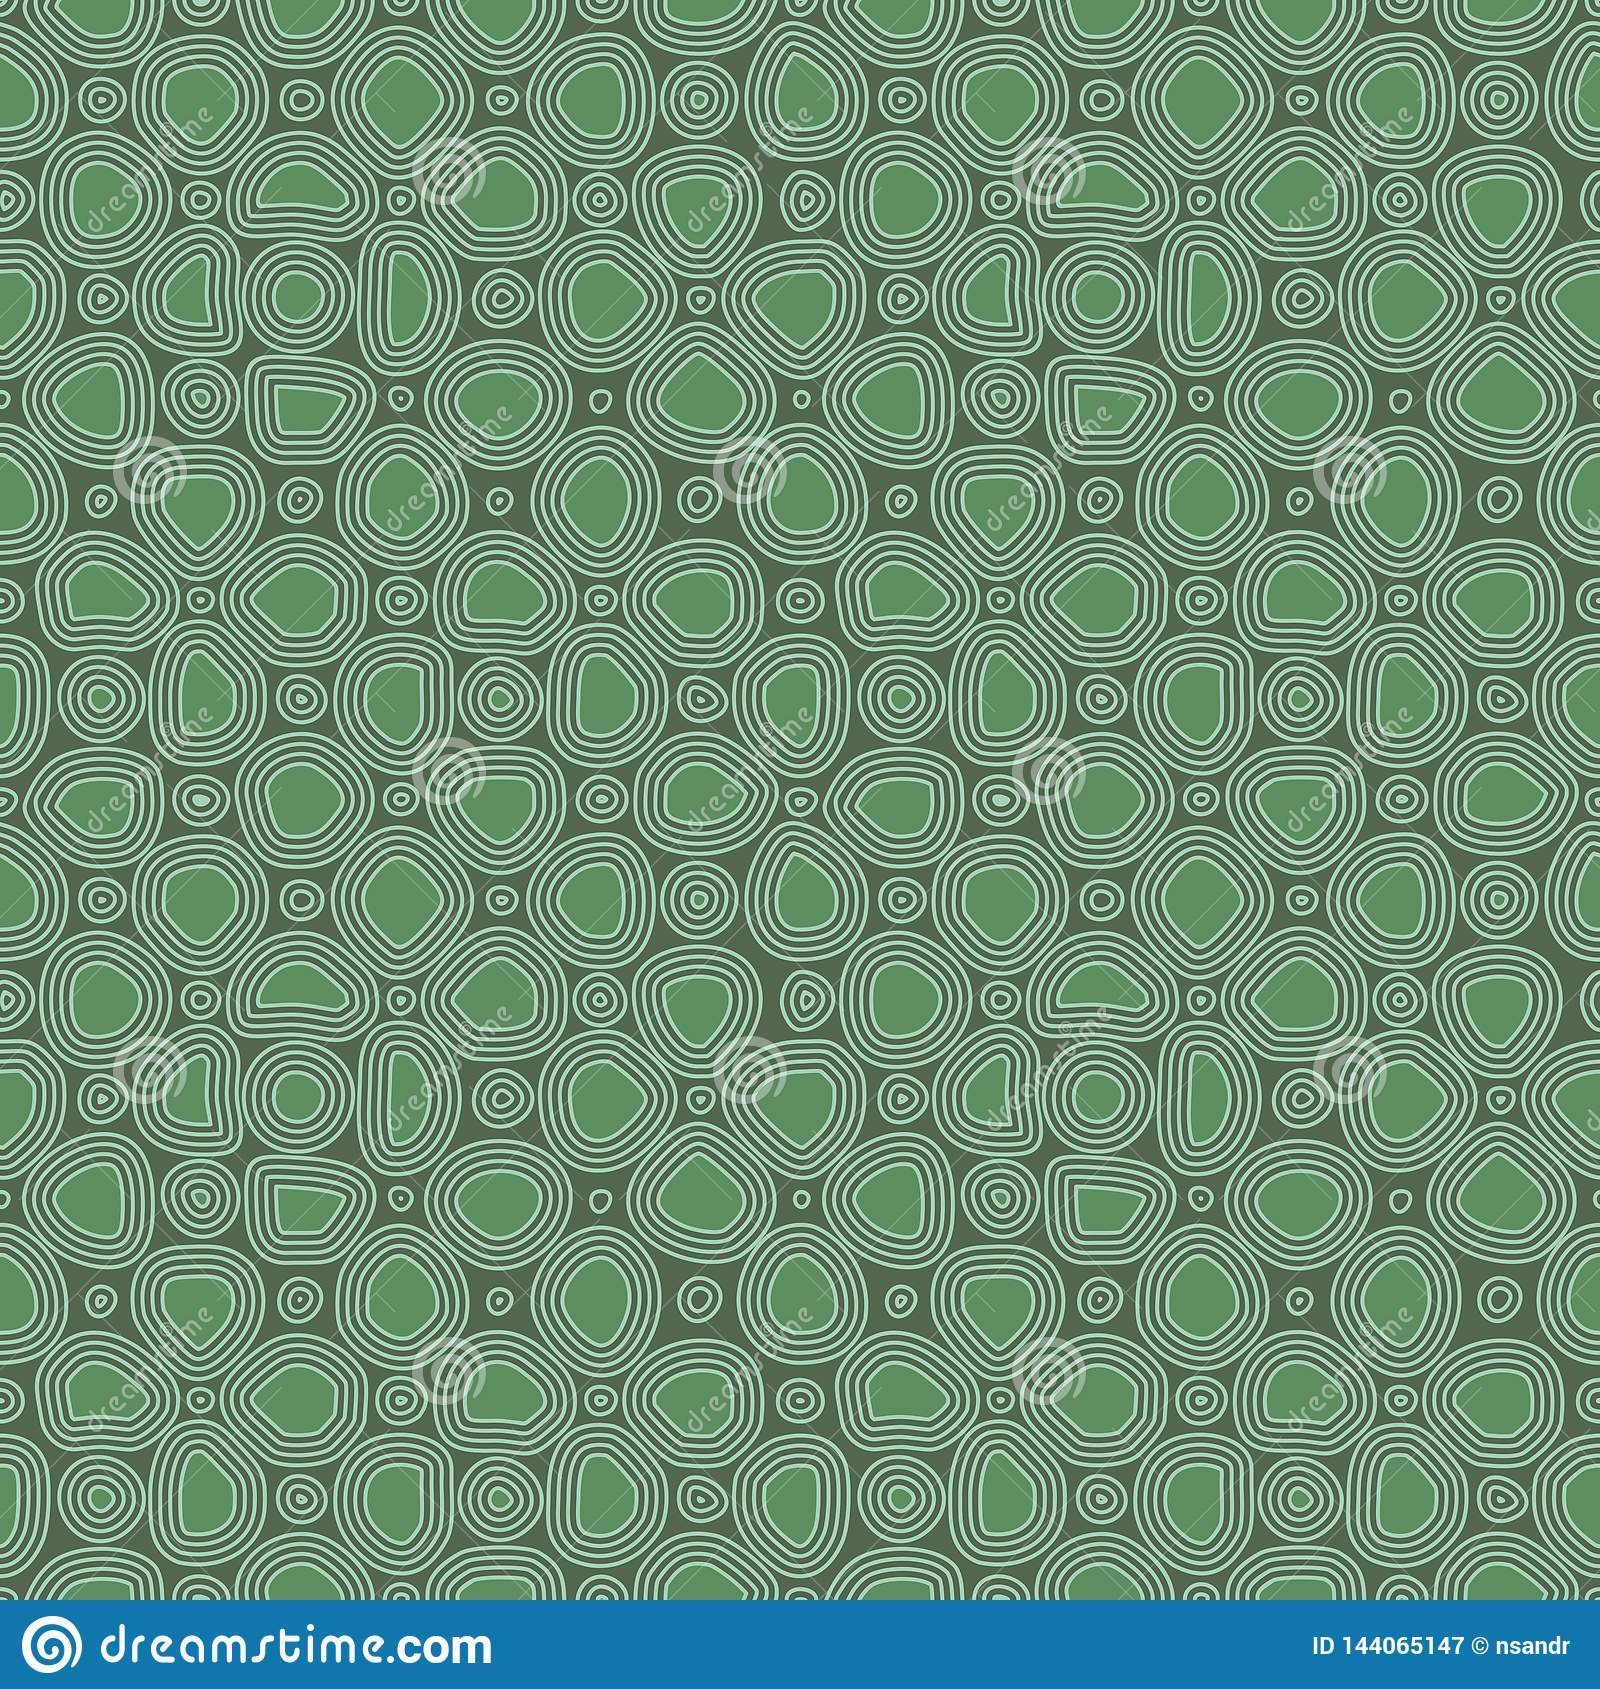 Abstract flat stones, hand drawn ethnic pattern. Vector green retro ornament for textile, prints, wallpaper, wrapping paper, web